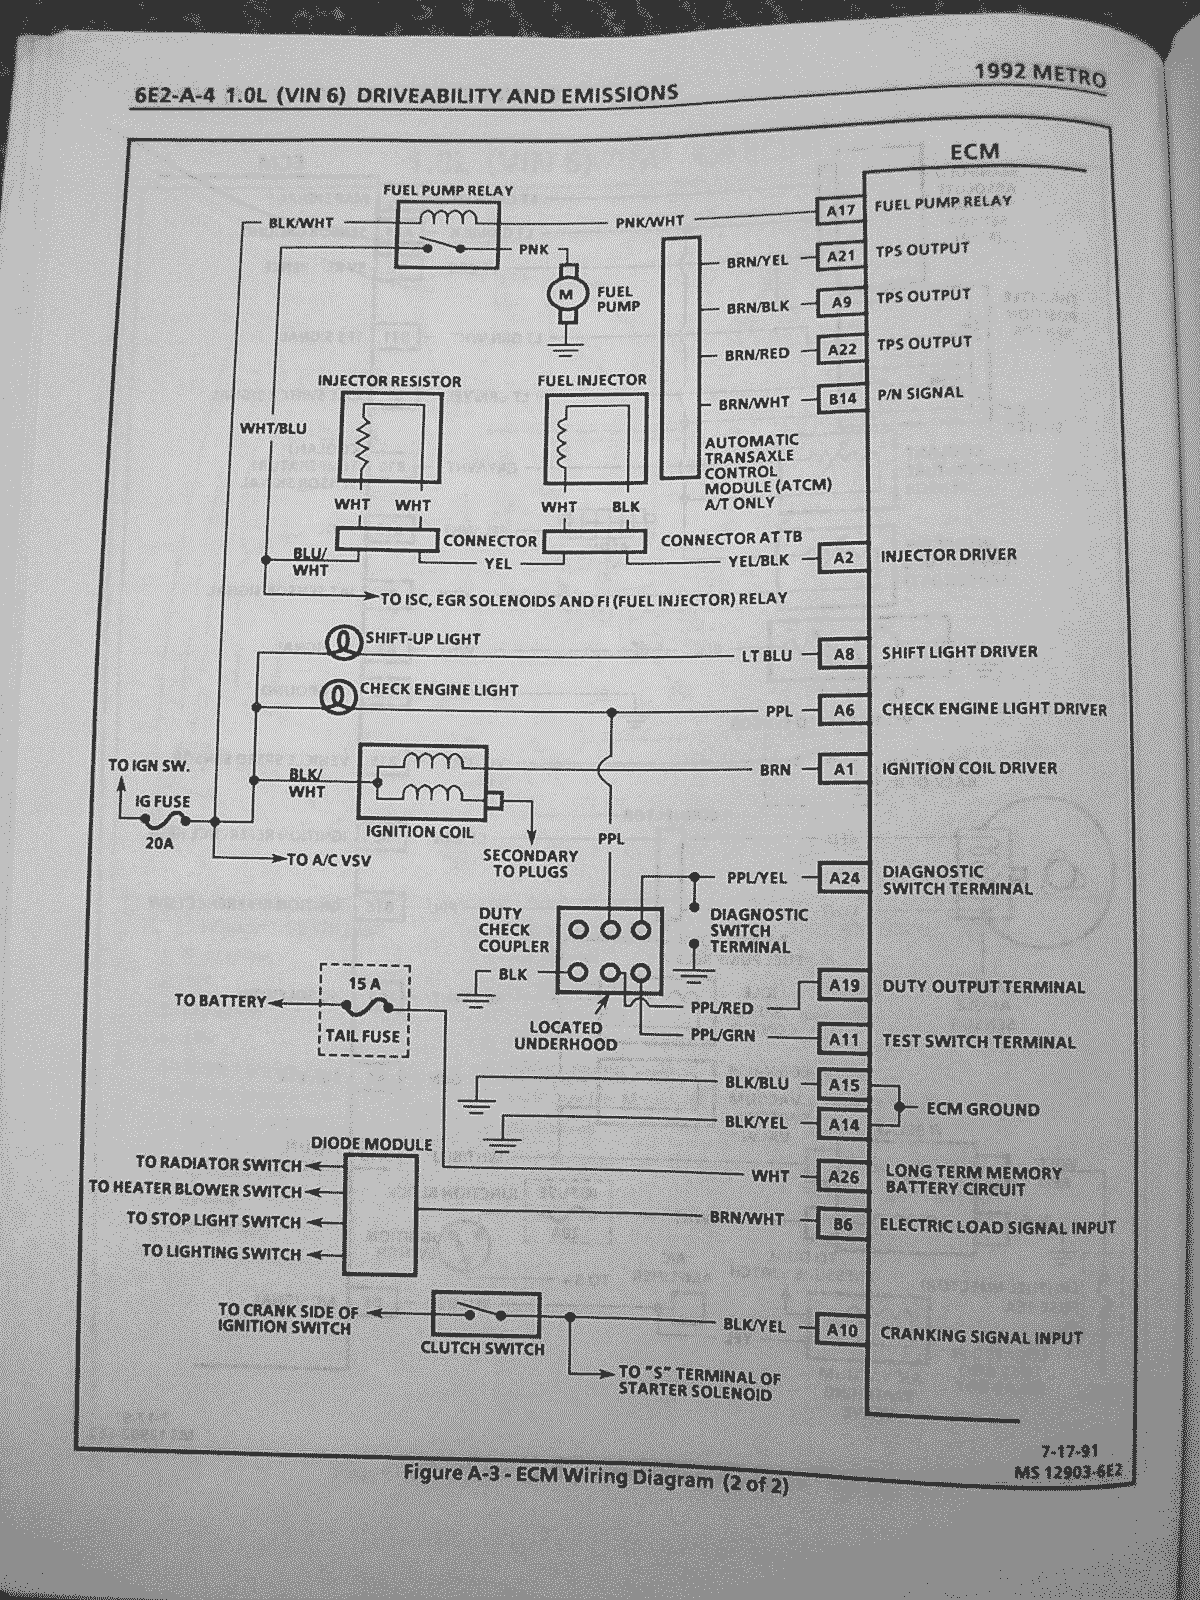 6e2 a 4 geo metro and suzuki swift wiring diagrams metroxfi com Suzuki Wire at reclaimingppi.co